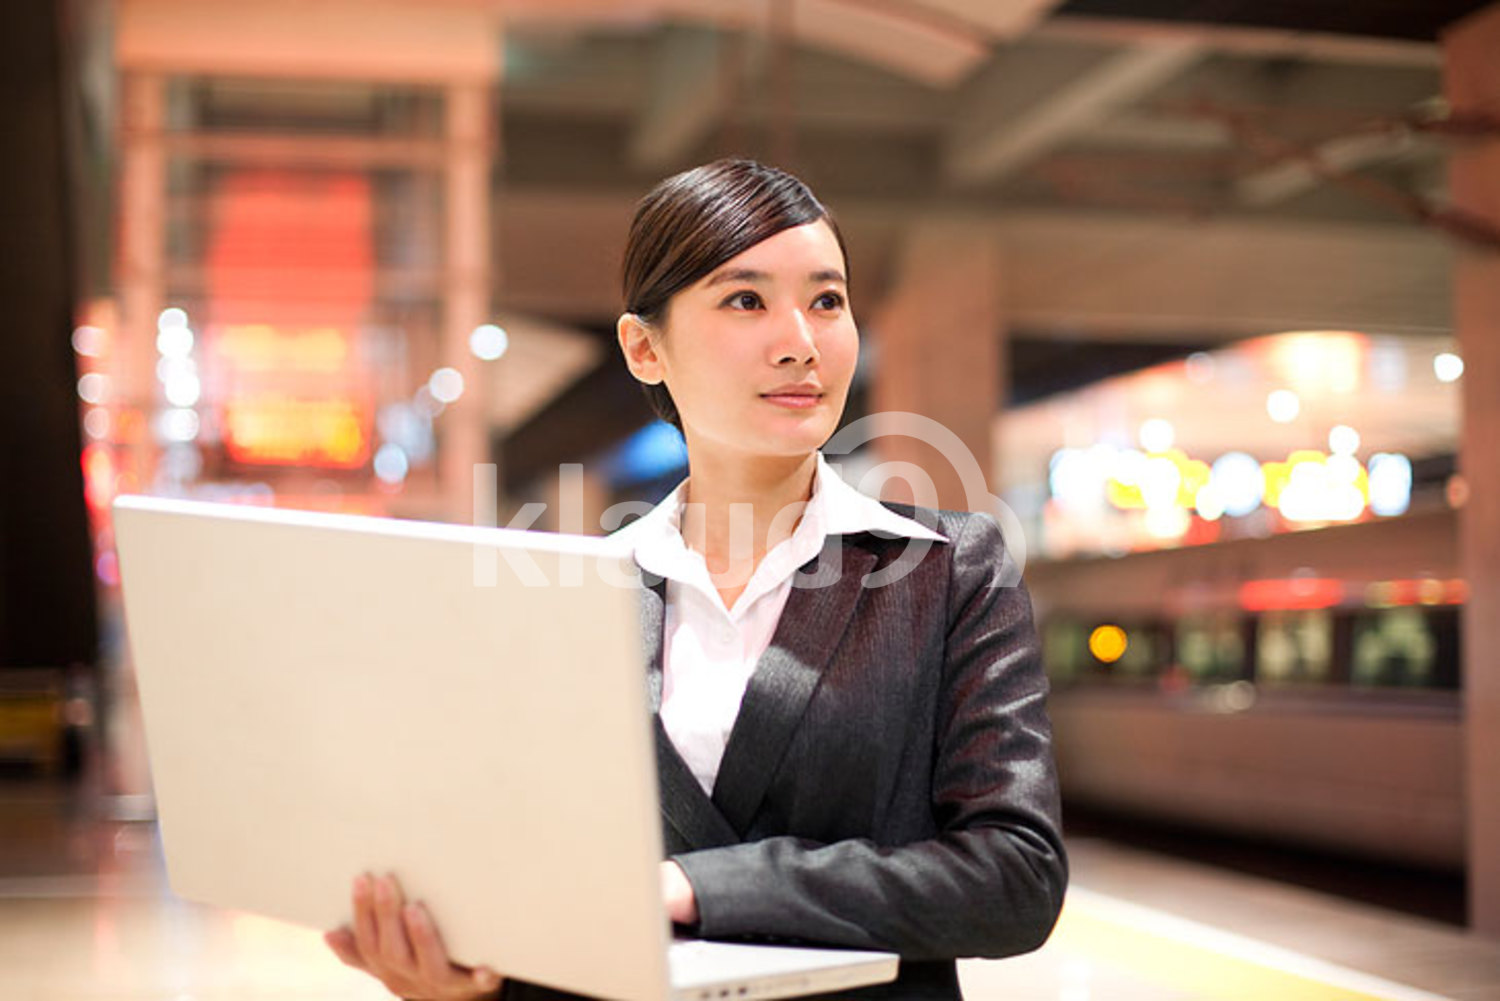 Young Chinese businesswoman using her laptop at the train station